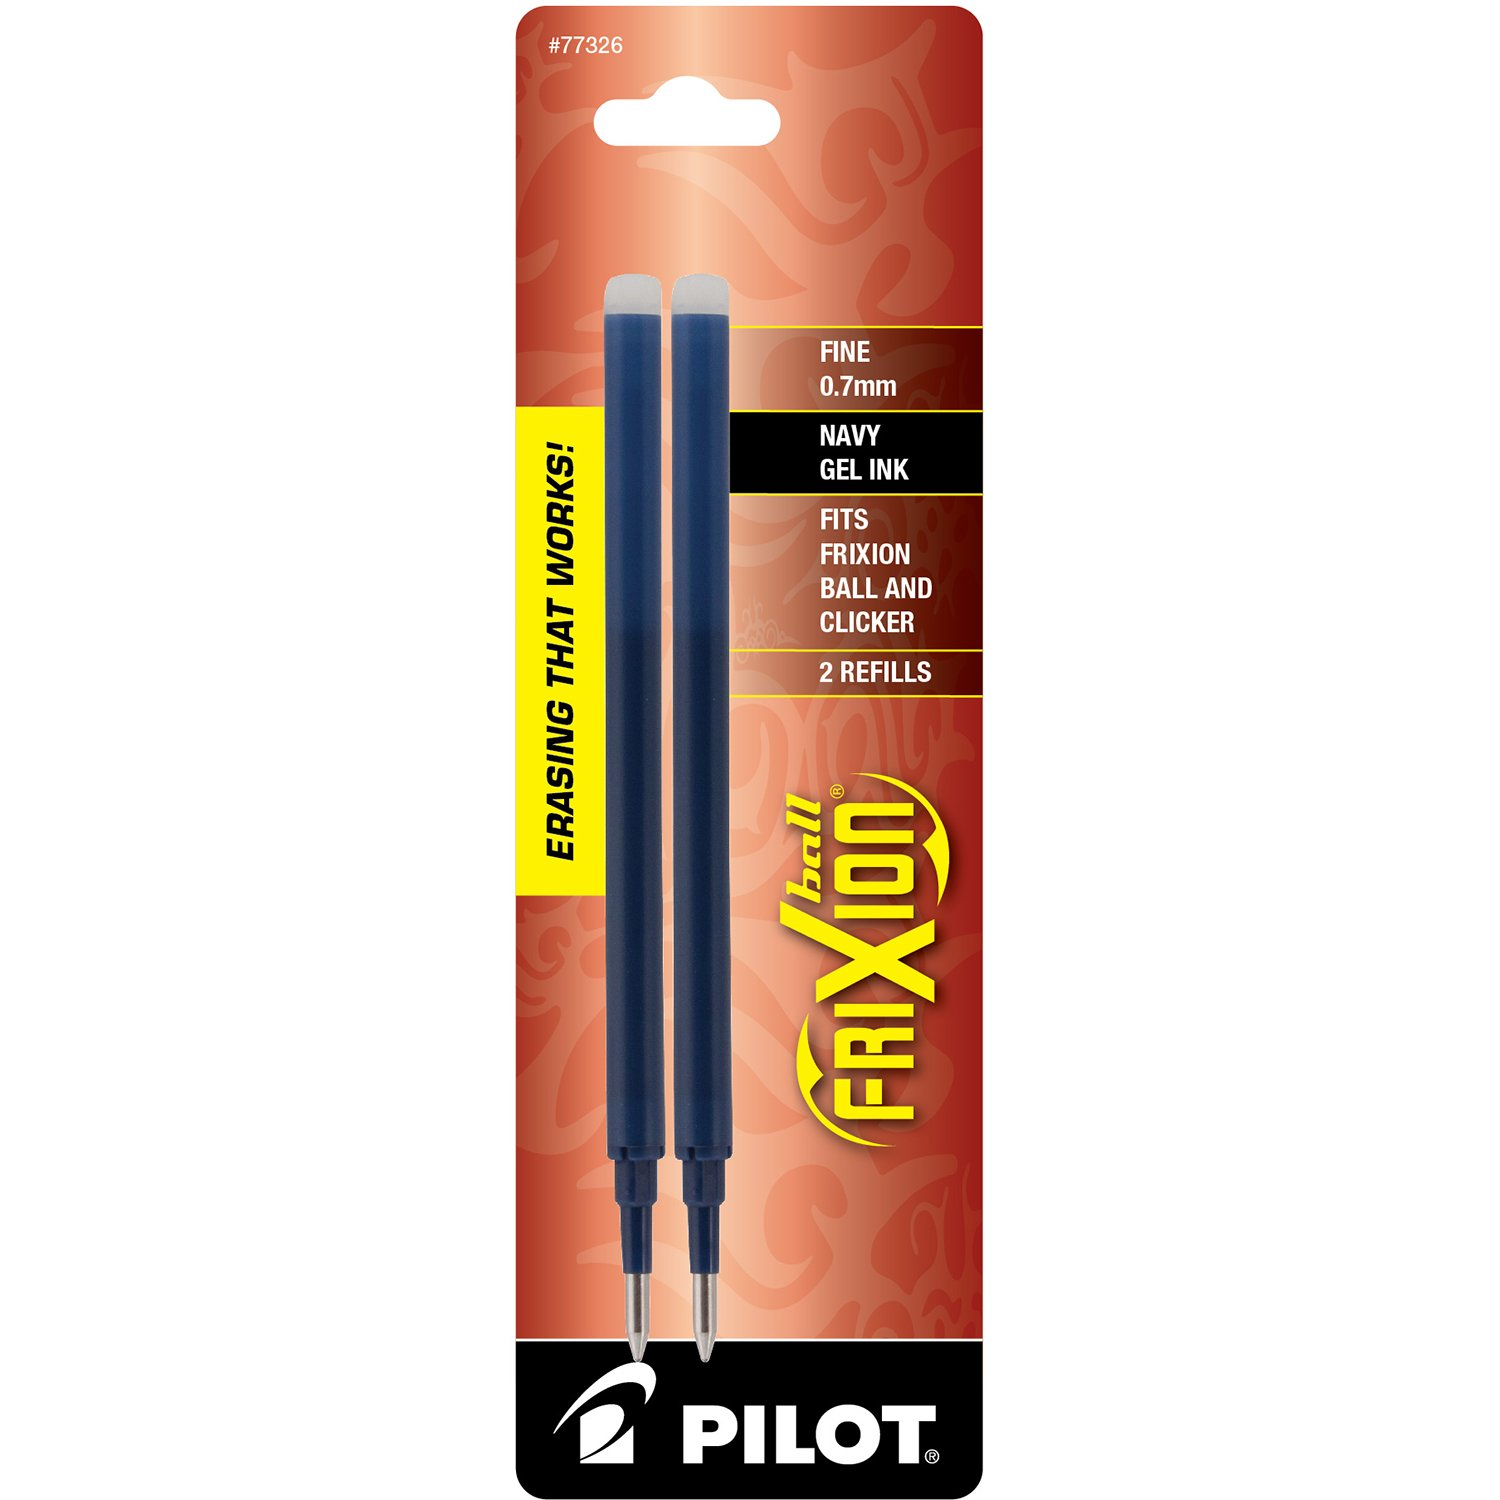 Pilot FriXion Gel Ink Pen Refill, 3-Pack for Erasable Pens, Fine Point, Red Ink -77332